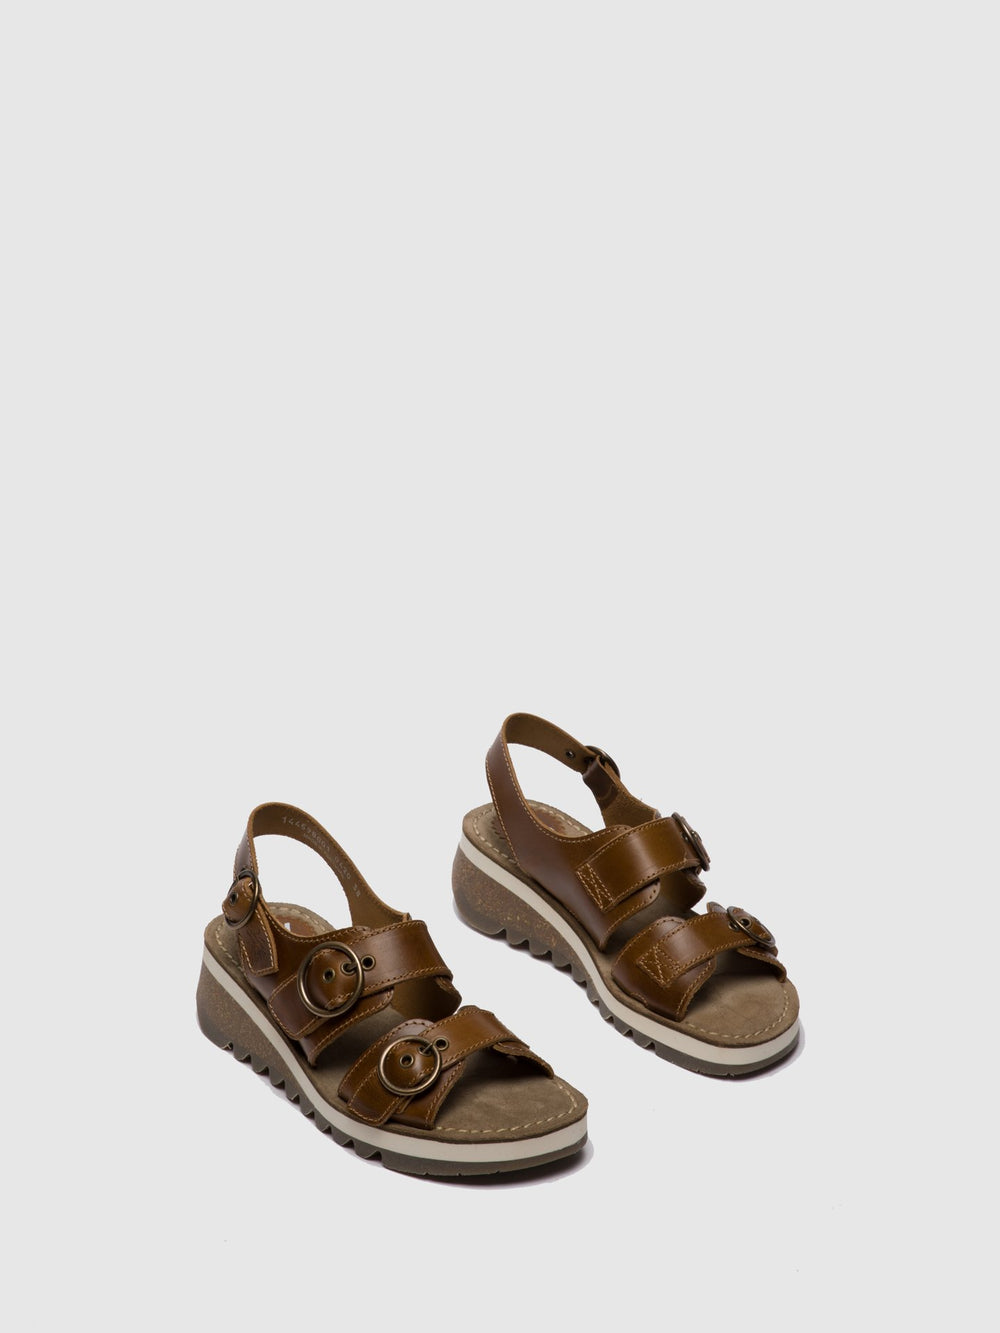 Buckle Sandals TEAR 2 CAMEL